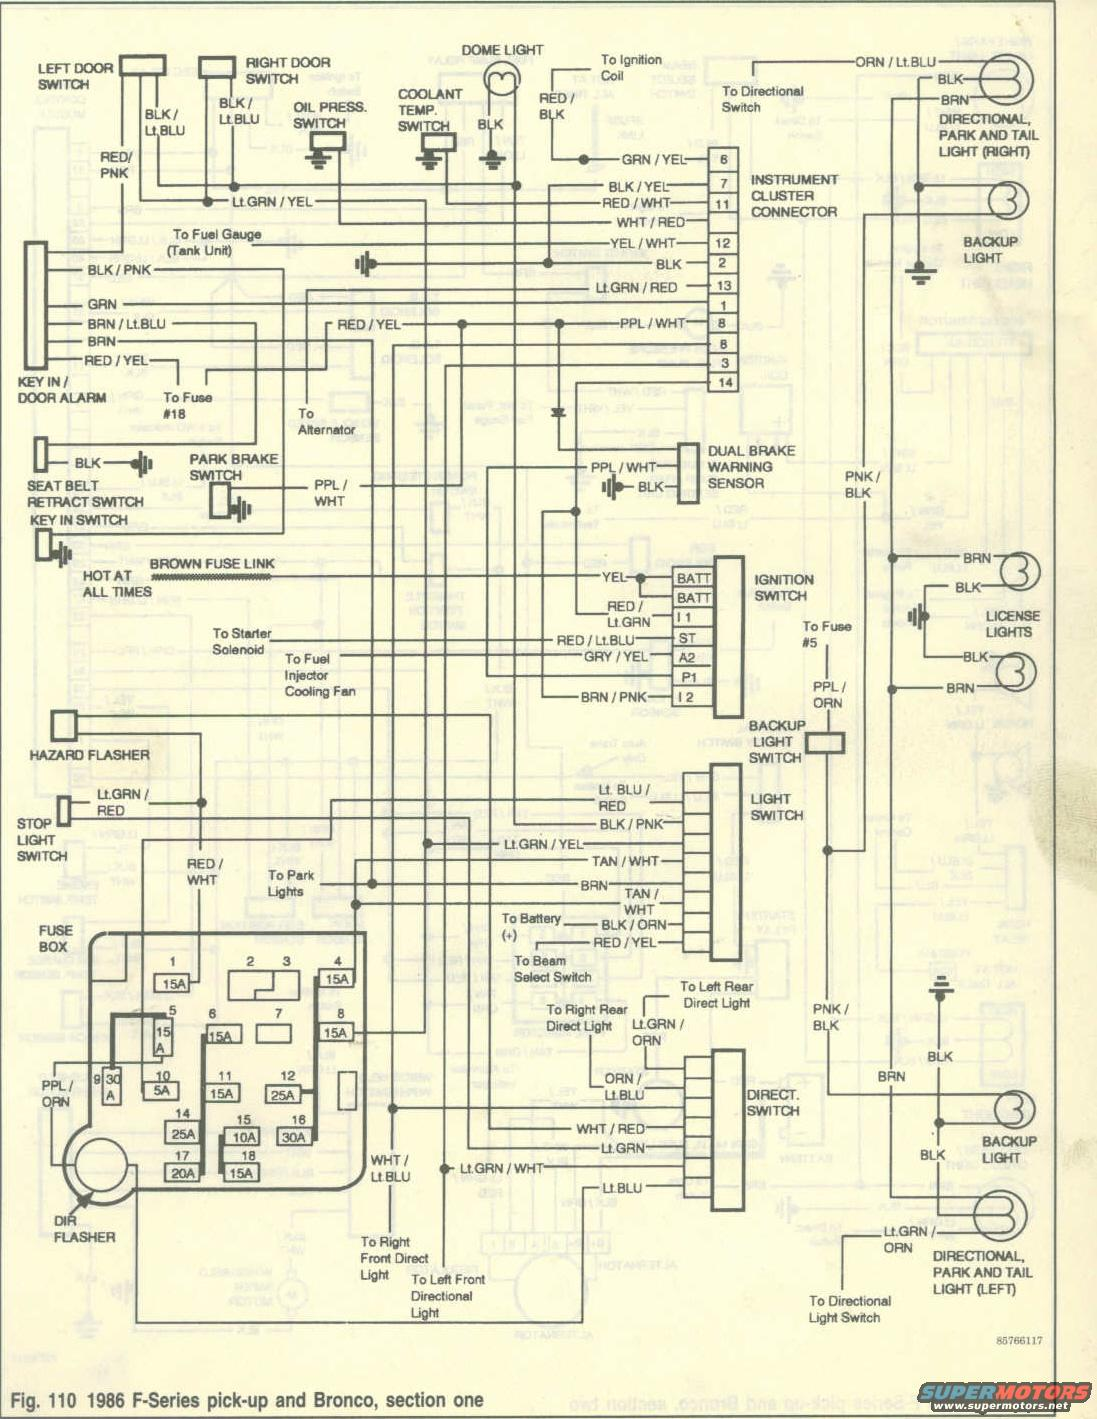 hight resolution of 1986 ford wiring diagram wiring diagram schematic 1986 f250 wiring diagram schema wiring diagram 1986 ford